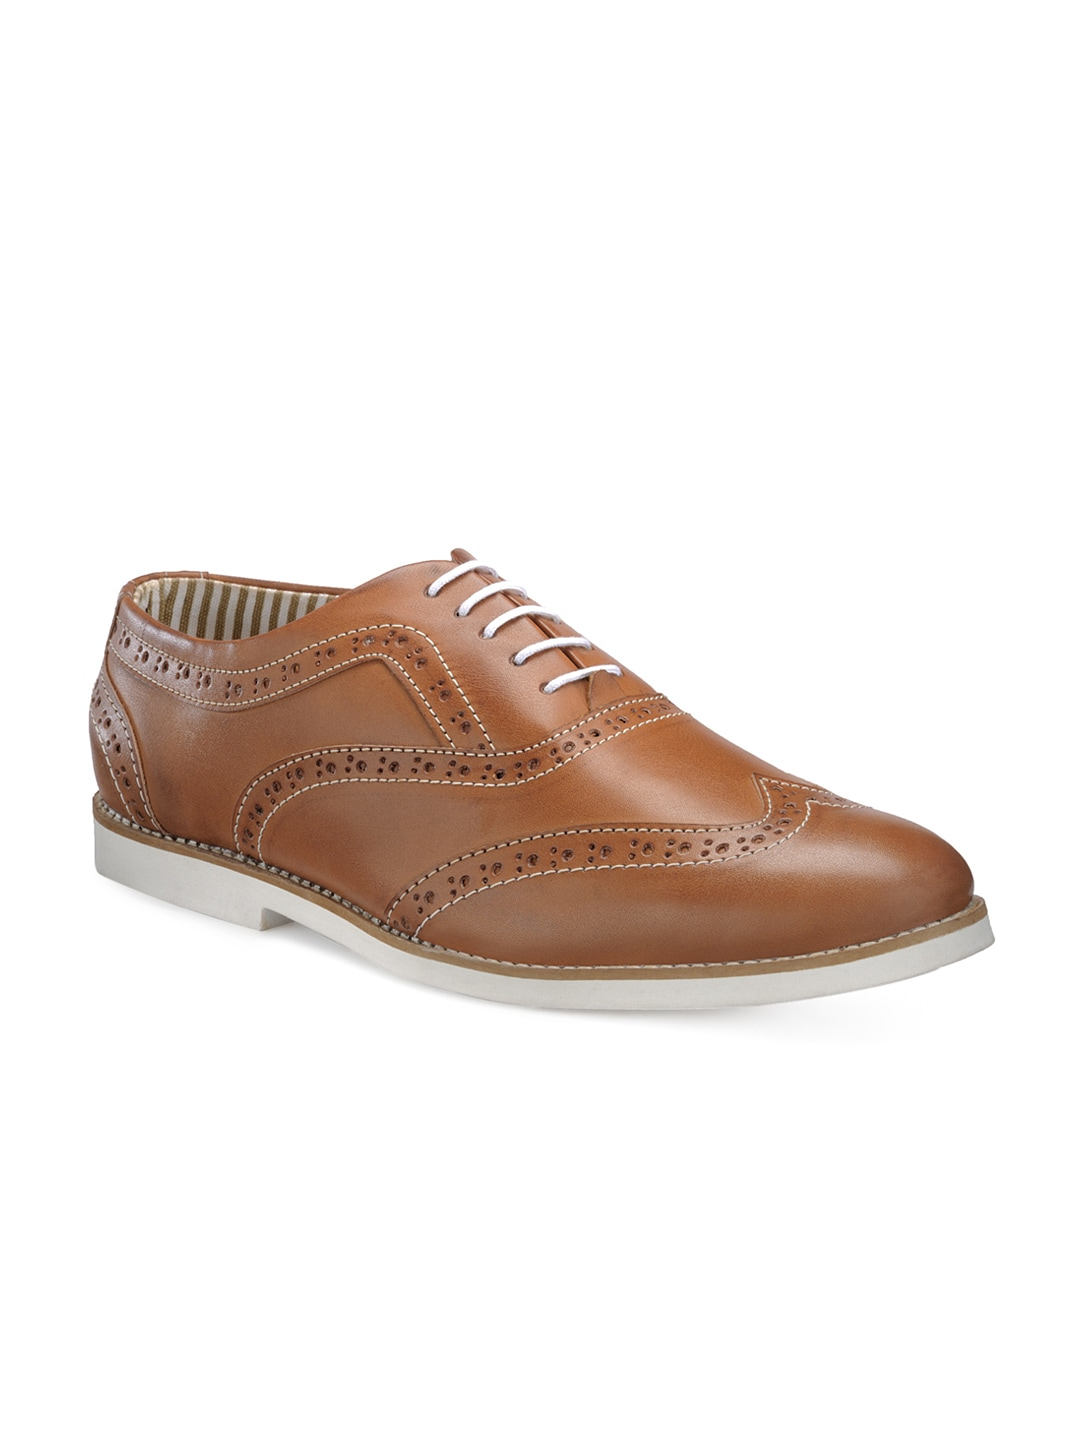 Men Casual Shoes Online Shopping at Best Discount and Price - Yebhi